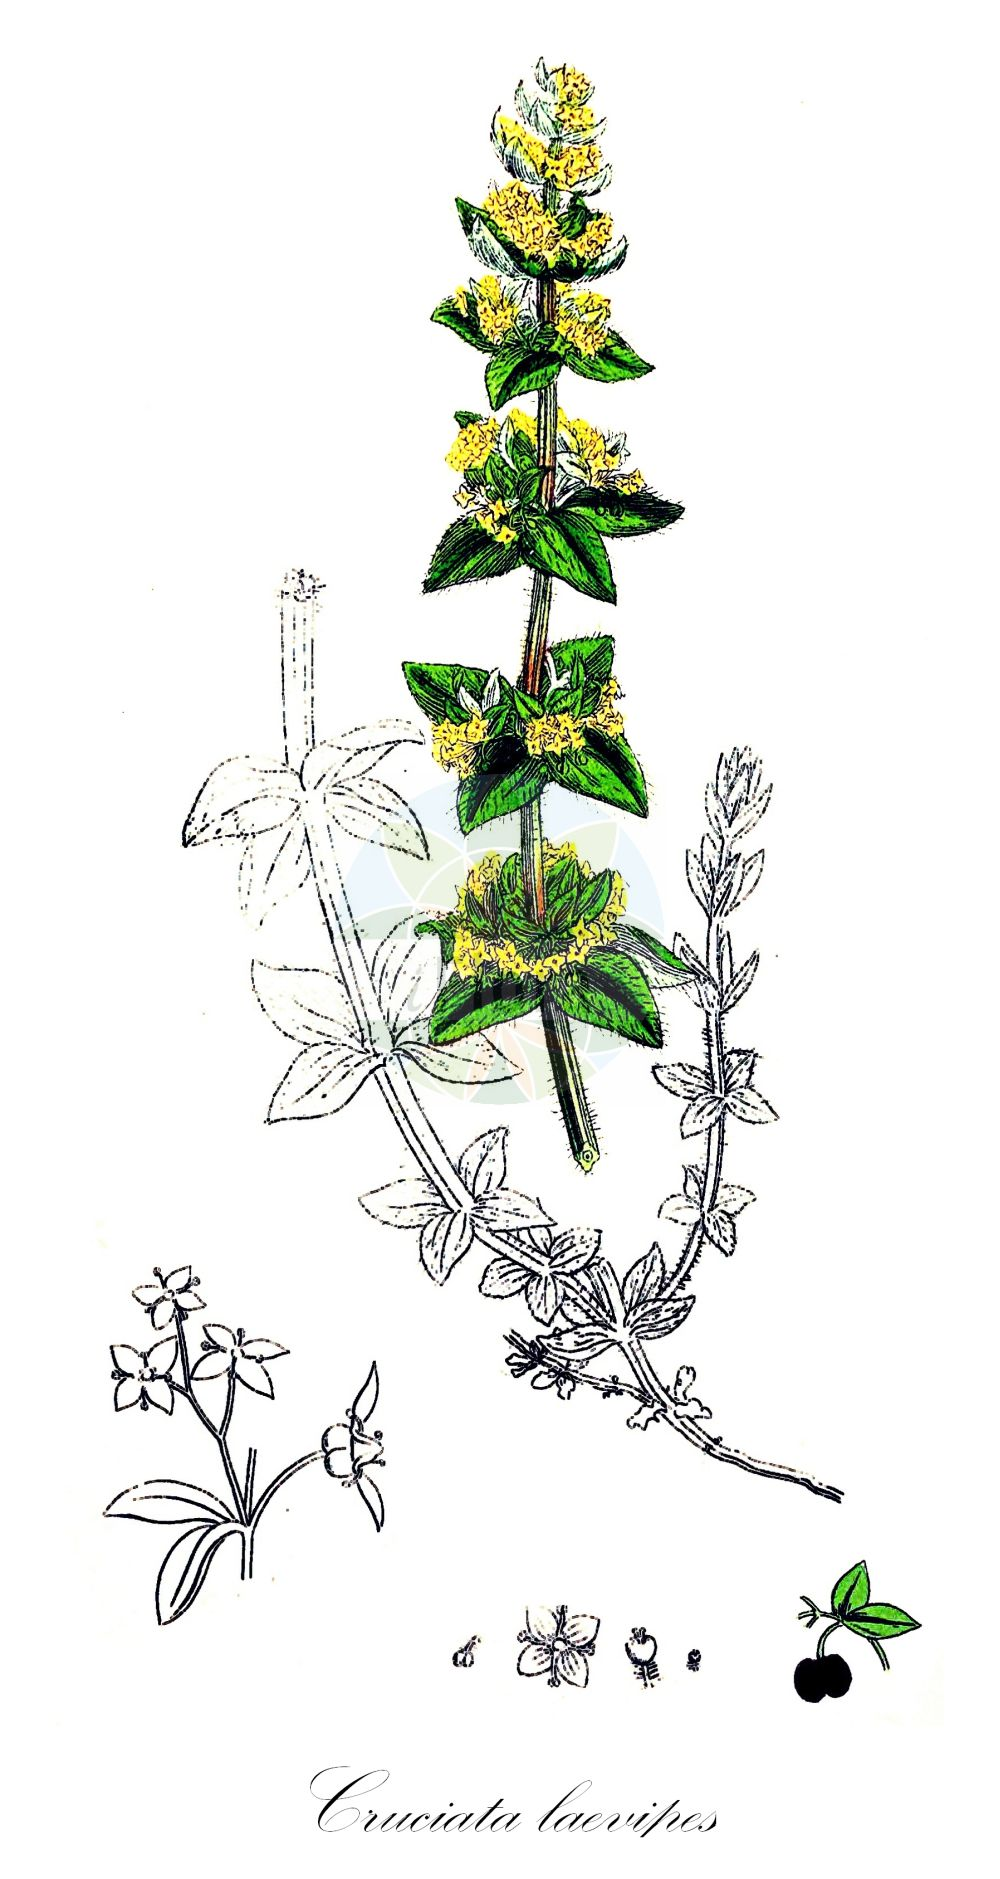 Historische Abbildung von Cruciata laevipes (Gewoehnliches Kreuzlabkraut - Crosswort). Das Bild zeigt Blatt, Bluete, Frucht und Same. ---- Historical Drawing of Cruciata laevipes (Gewoehnliches Kreuzlabkraut - Crosswort).The image is showing leaf, flower, fruit and seed.(Cruciata laevipes,Gewoehnliches Kreuzlabkraut,Crosswort,Cruciata ciliata,Galium cruciata,Valantia cruciata,Smooth Bedstraw,Cruciata,Kreuzlabkraut,Bedstraw,Rubiaceae,Roetegewaechse;Kaffeegewaechse;Krappgewaechse;Labkrautgewaechse,Bedstraw family,Blatt,Bluete,Frucht,Same,leaf,flower,fruit,seed,Sowerby (1790-1813))